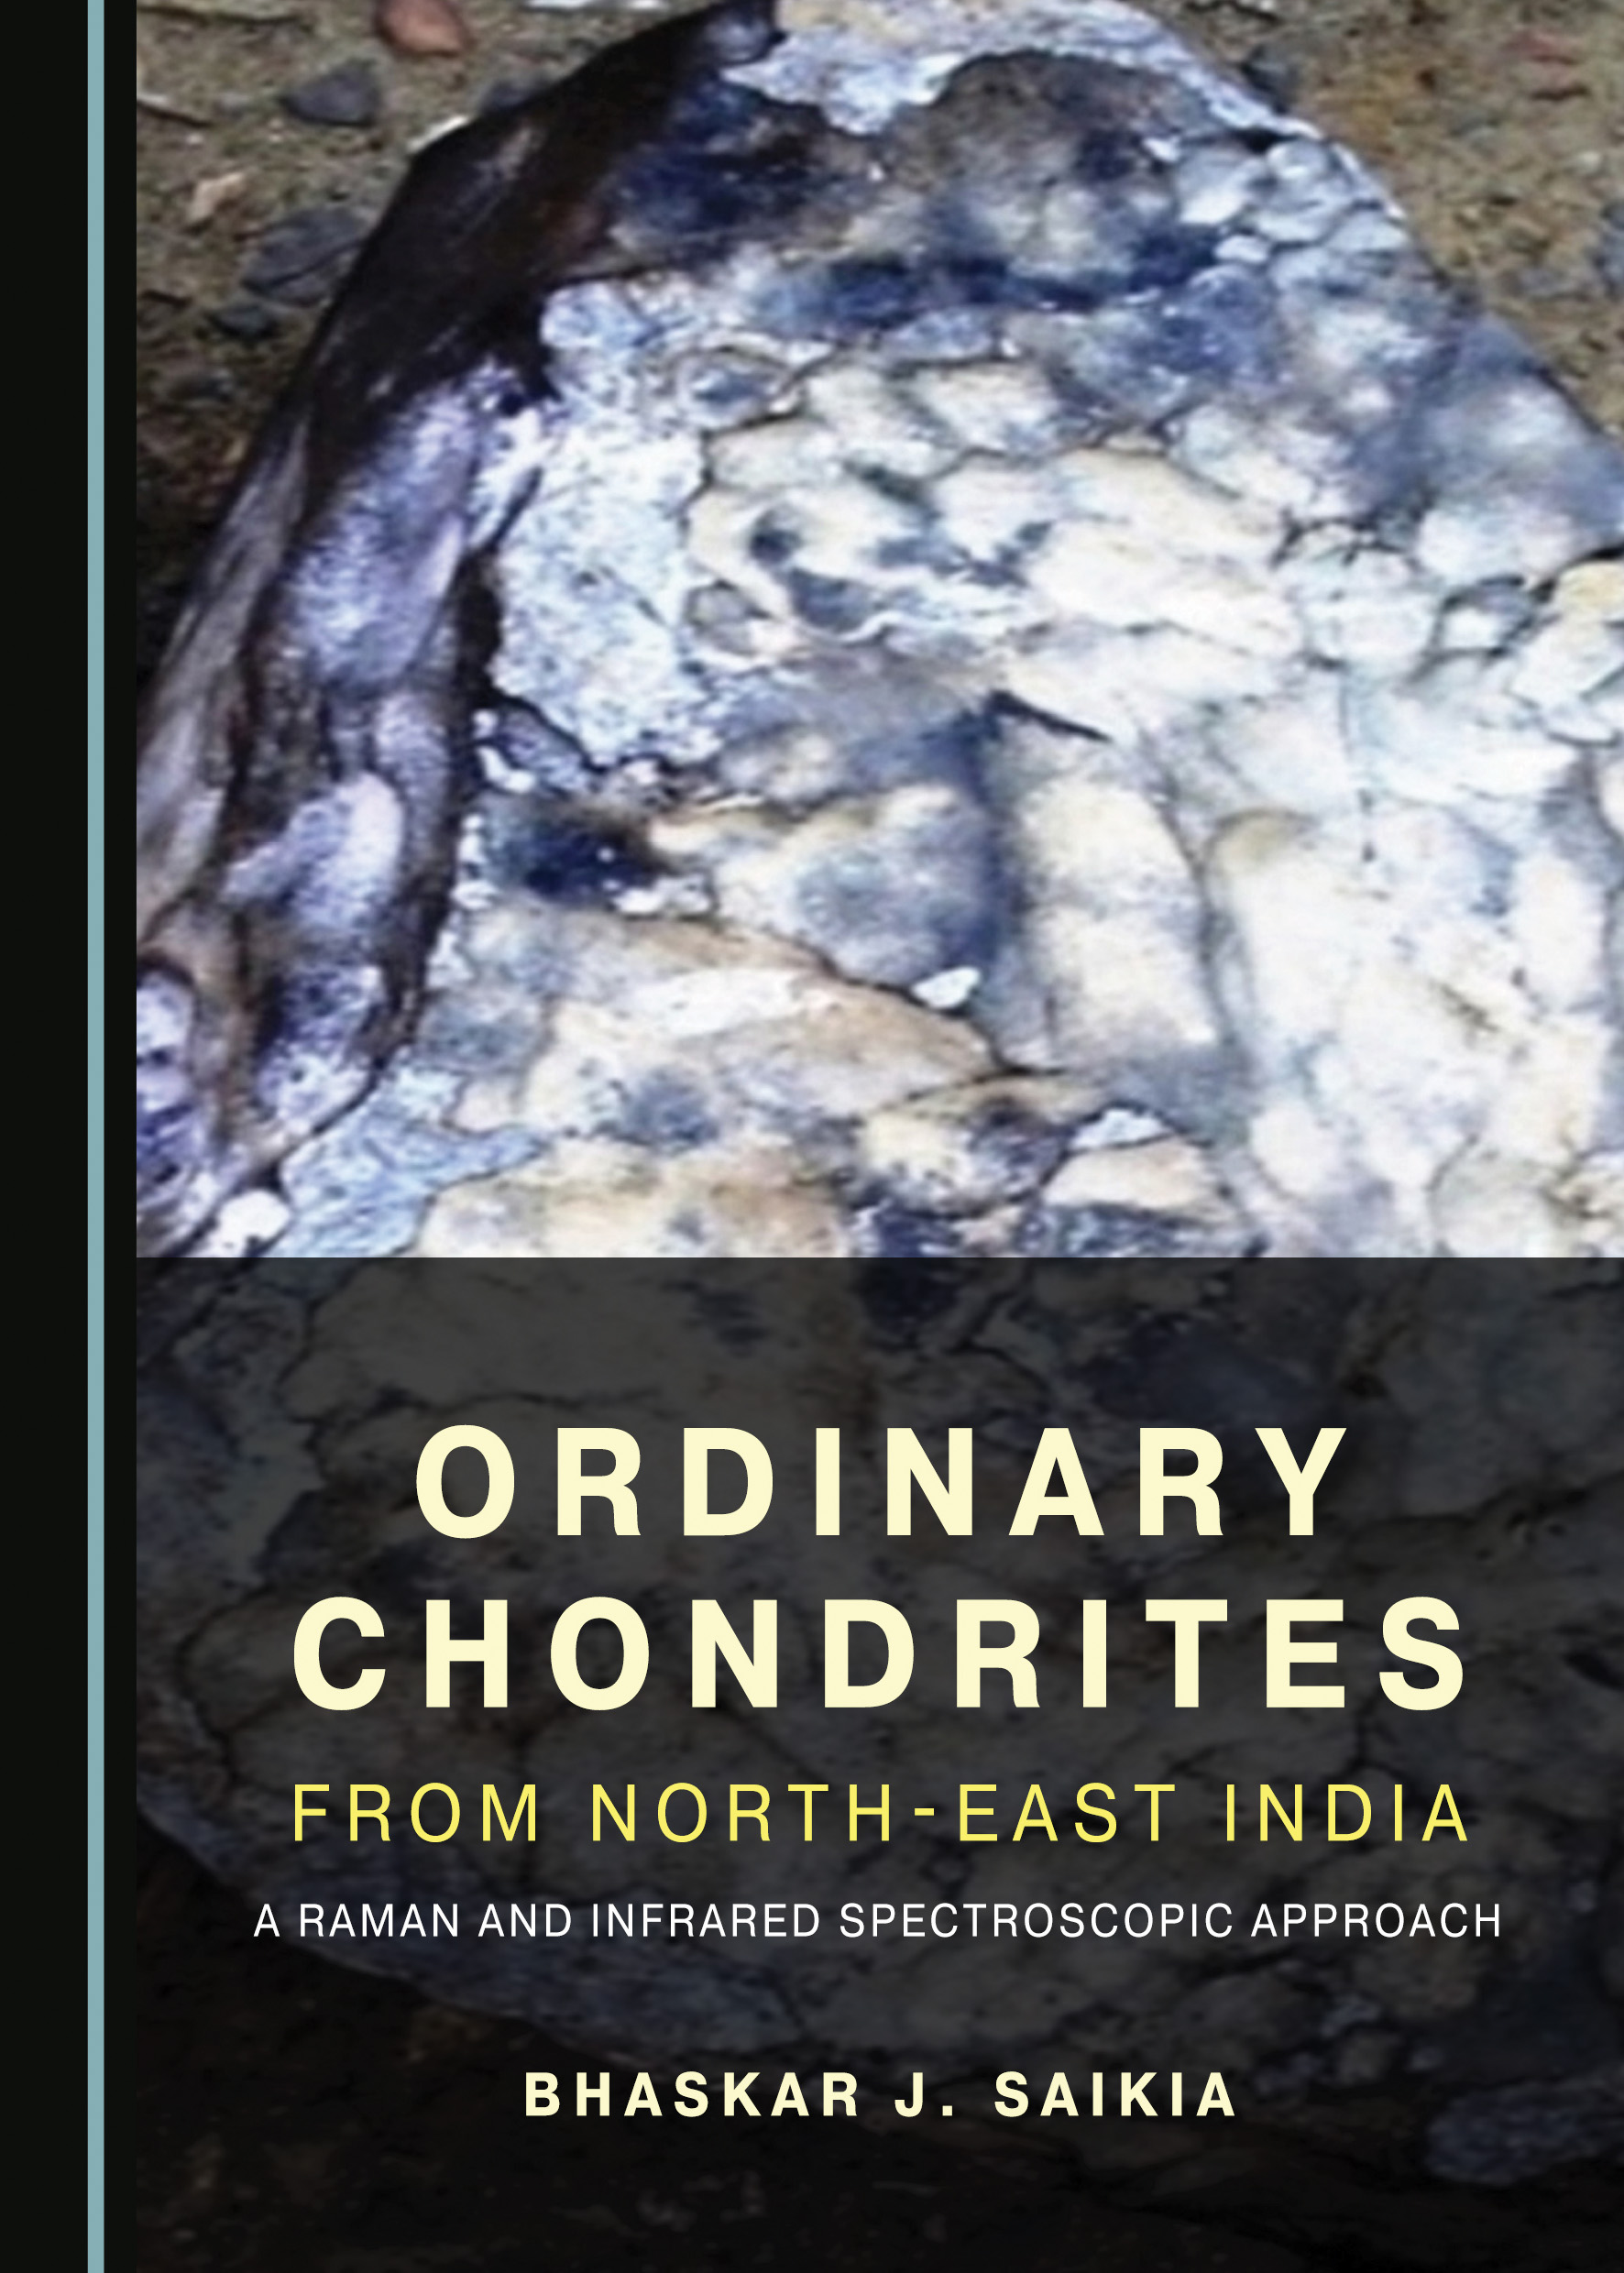 Ordinary Chondrites from North-East India: A Raman and Infrared Spectroscopic Approach